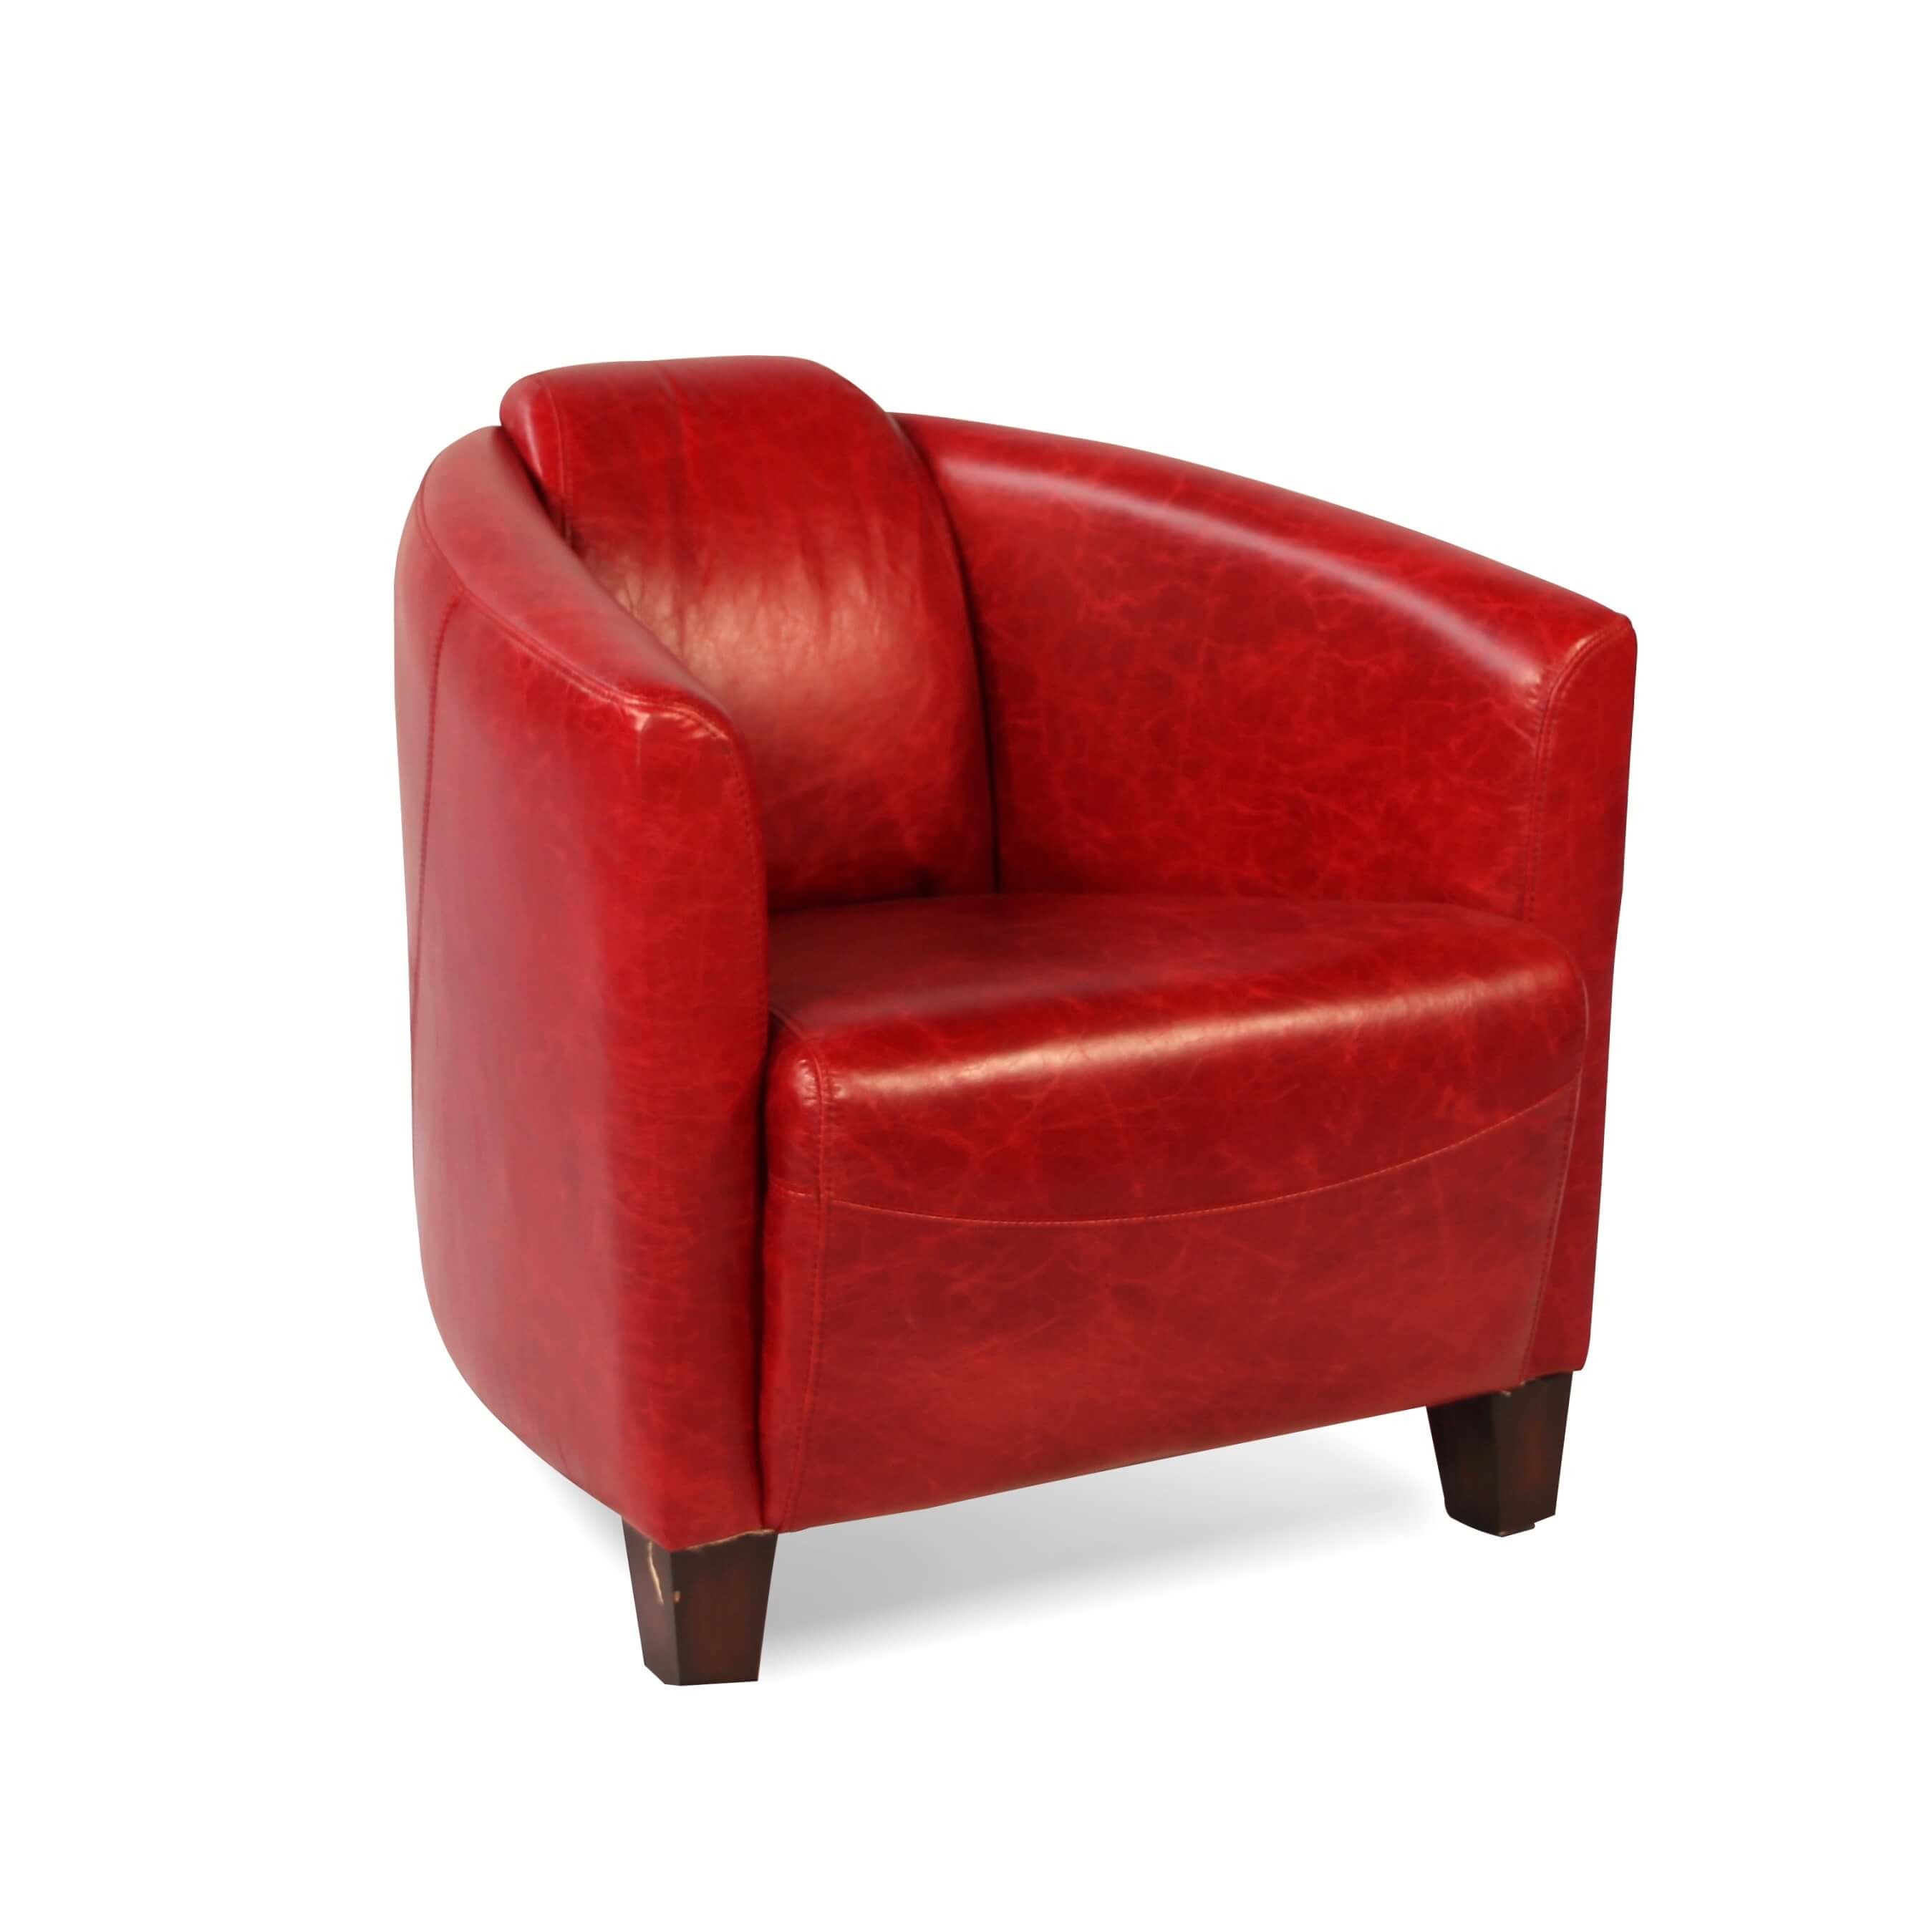 Club Sessel Vintage Clubsessel In Patina Rote Leder Design English Stil